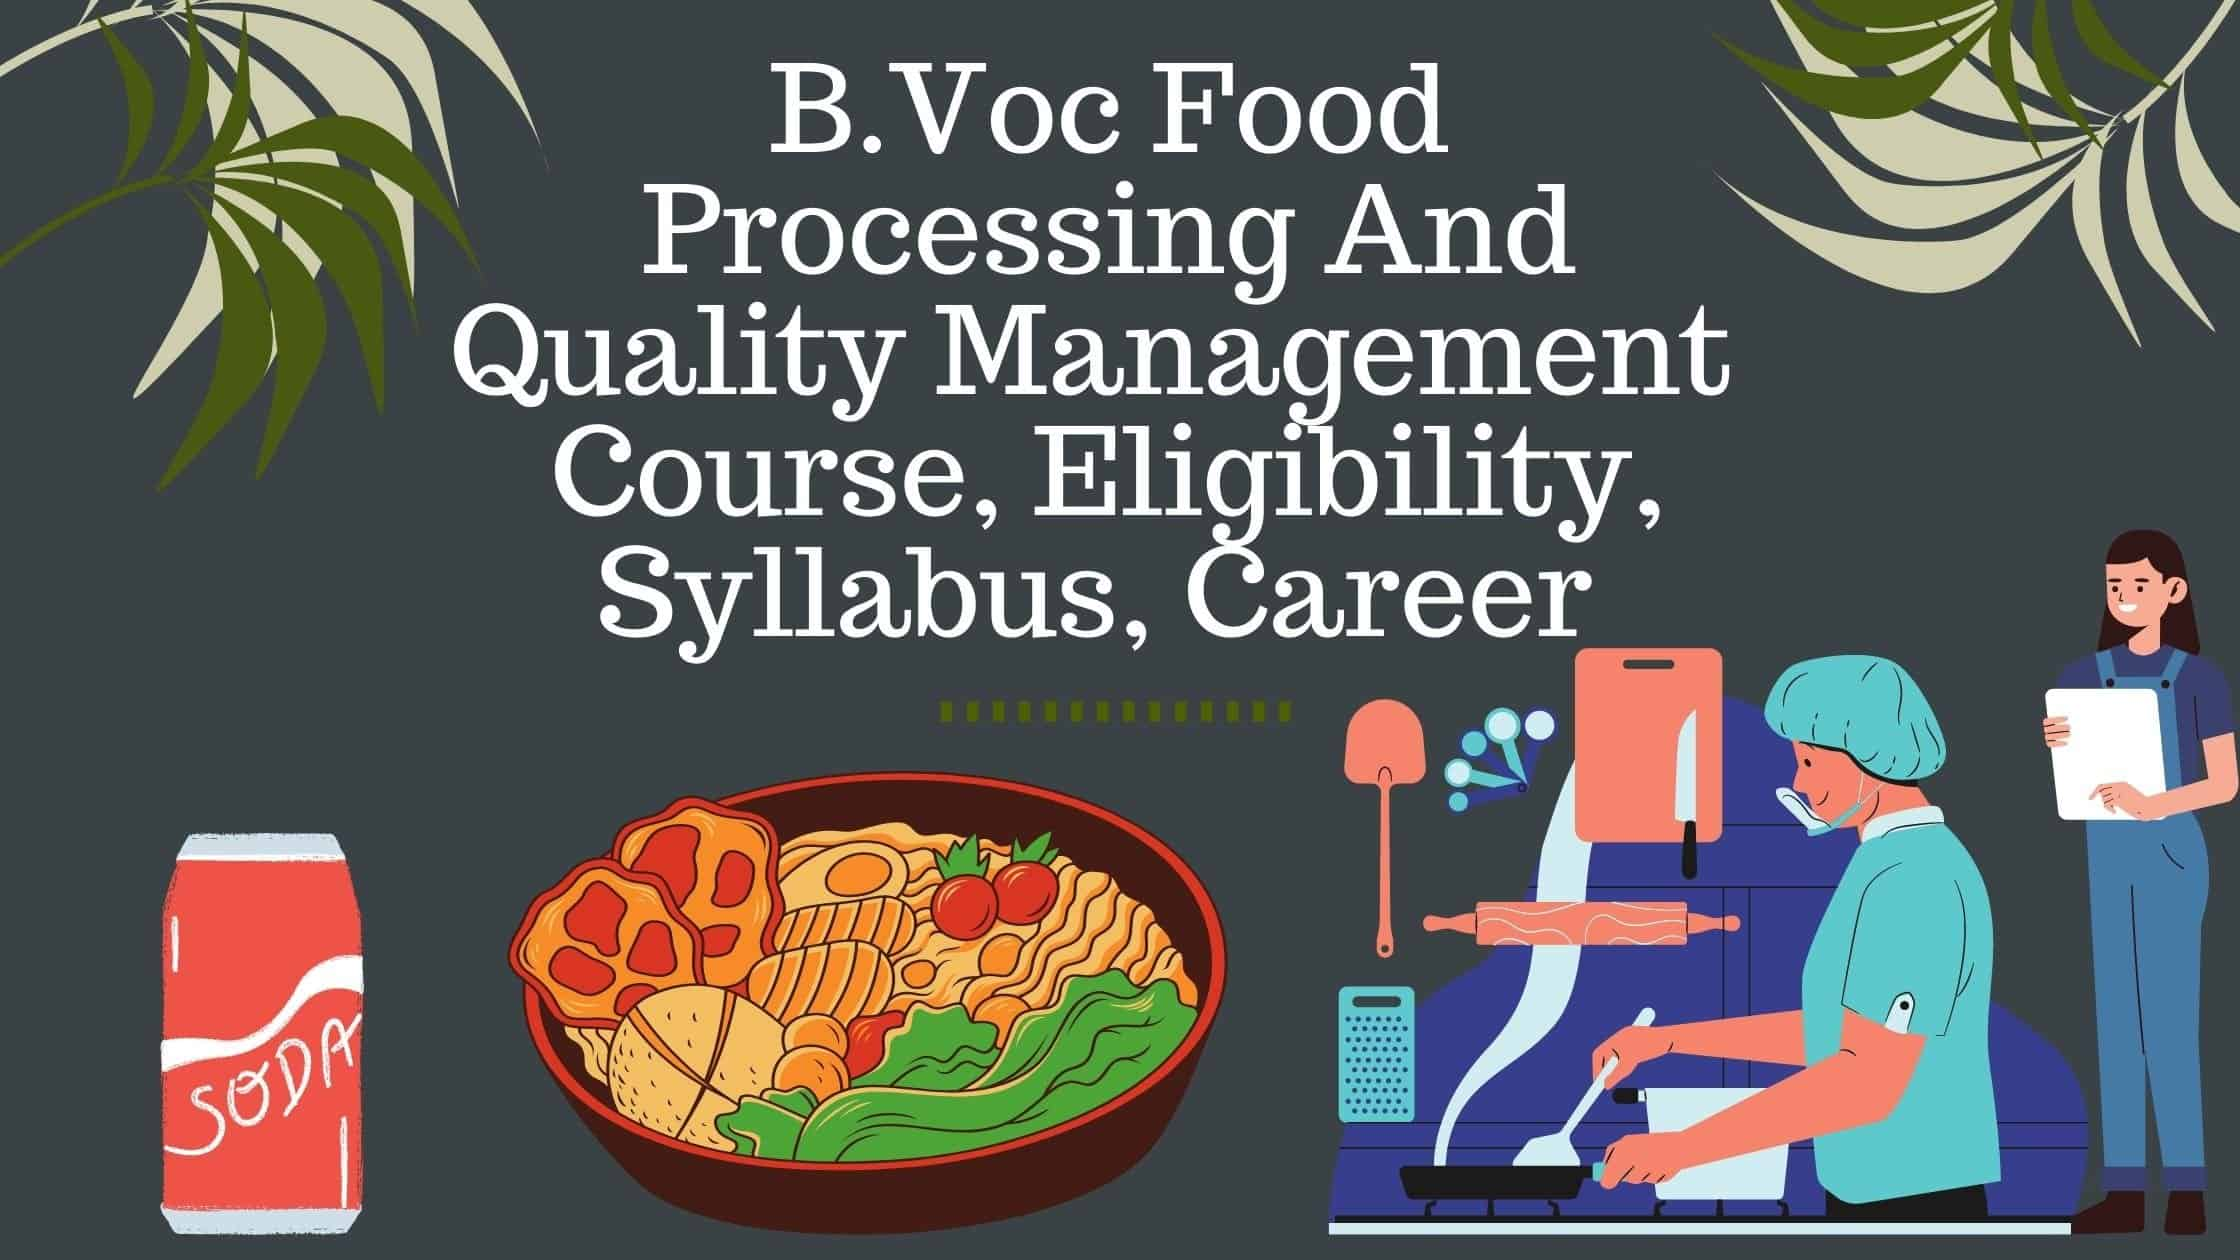 B.Voc Food Processing And Quality Management Course, Eligibility, Syllabus, Career in Hindi